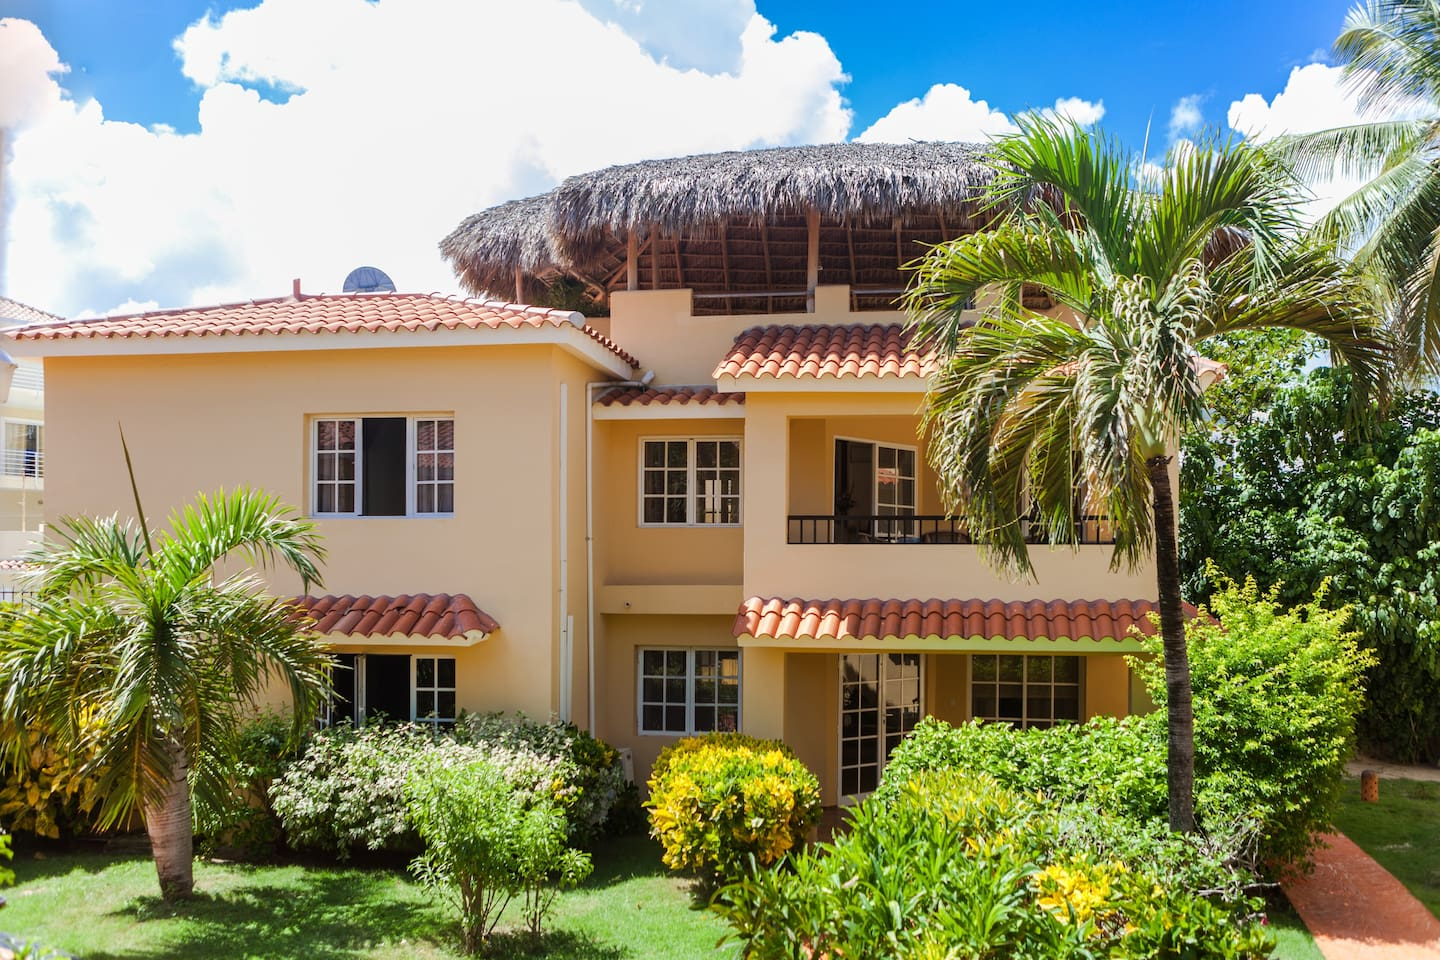 Feel safe and private in this amazing gated community.